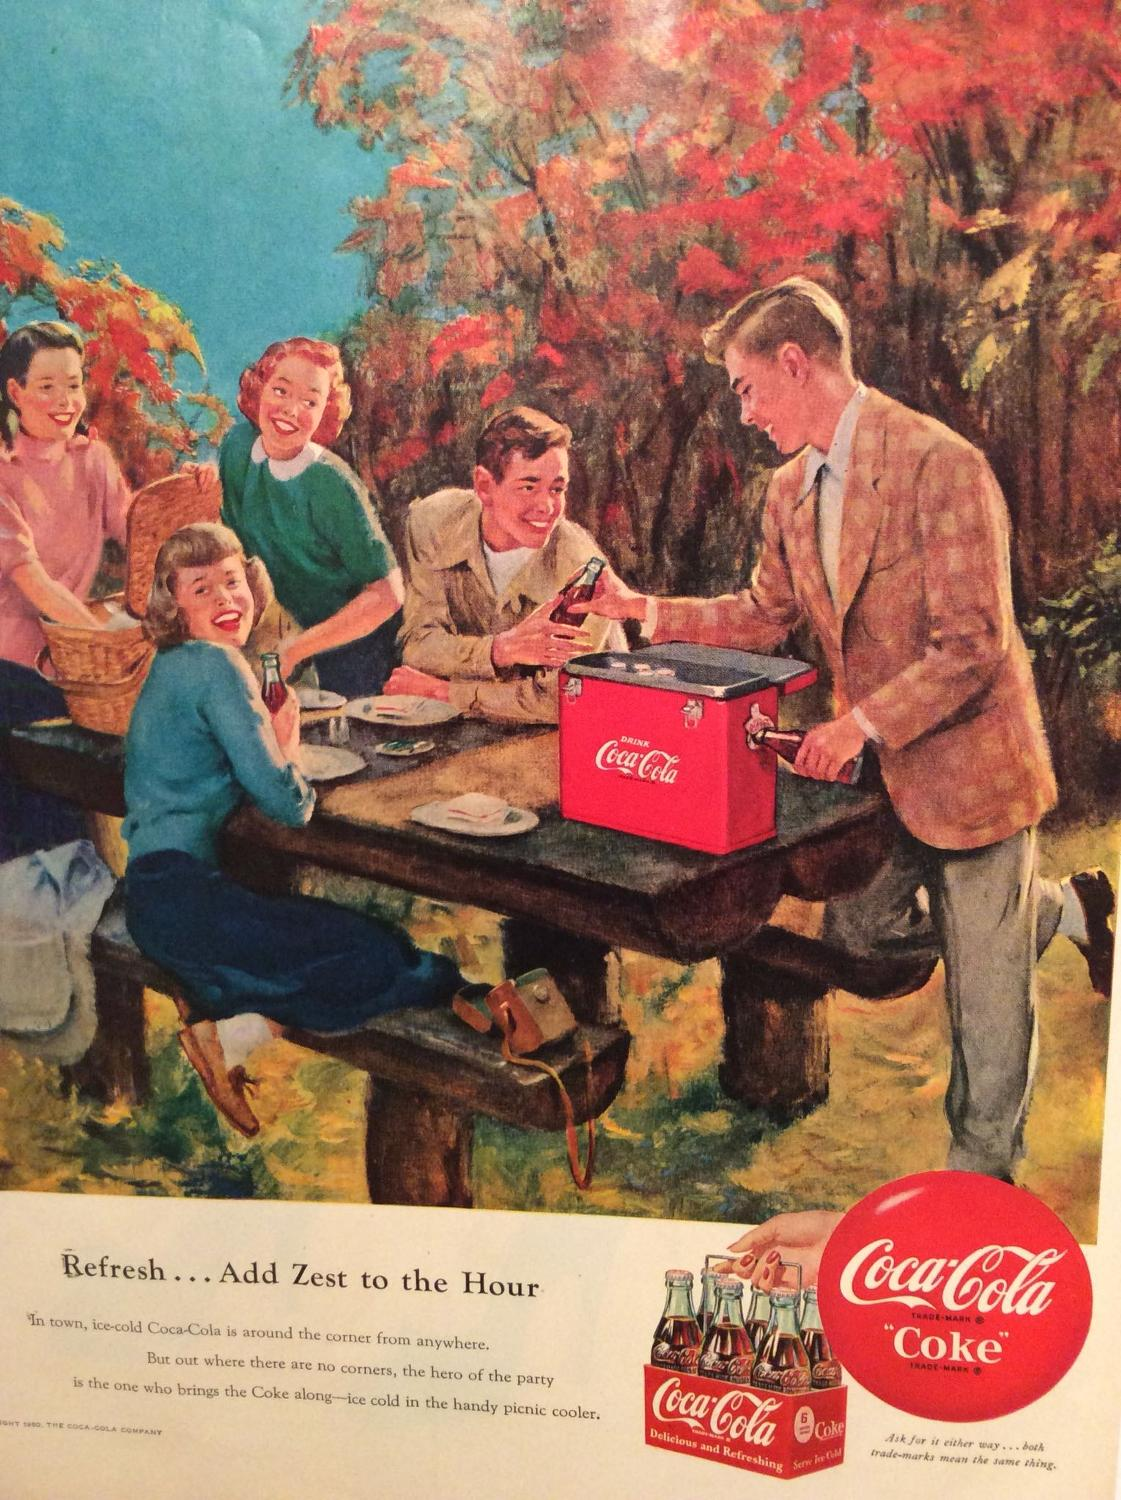 Best Coca Cola Coke Ad Vintage Copyright 1950 For Sale In Dollard Des Ormeaux Quebec 2018